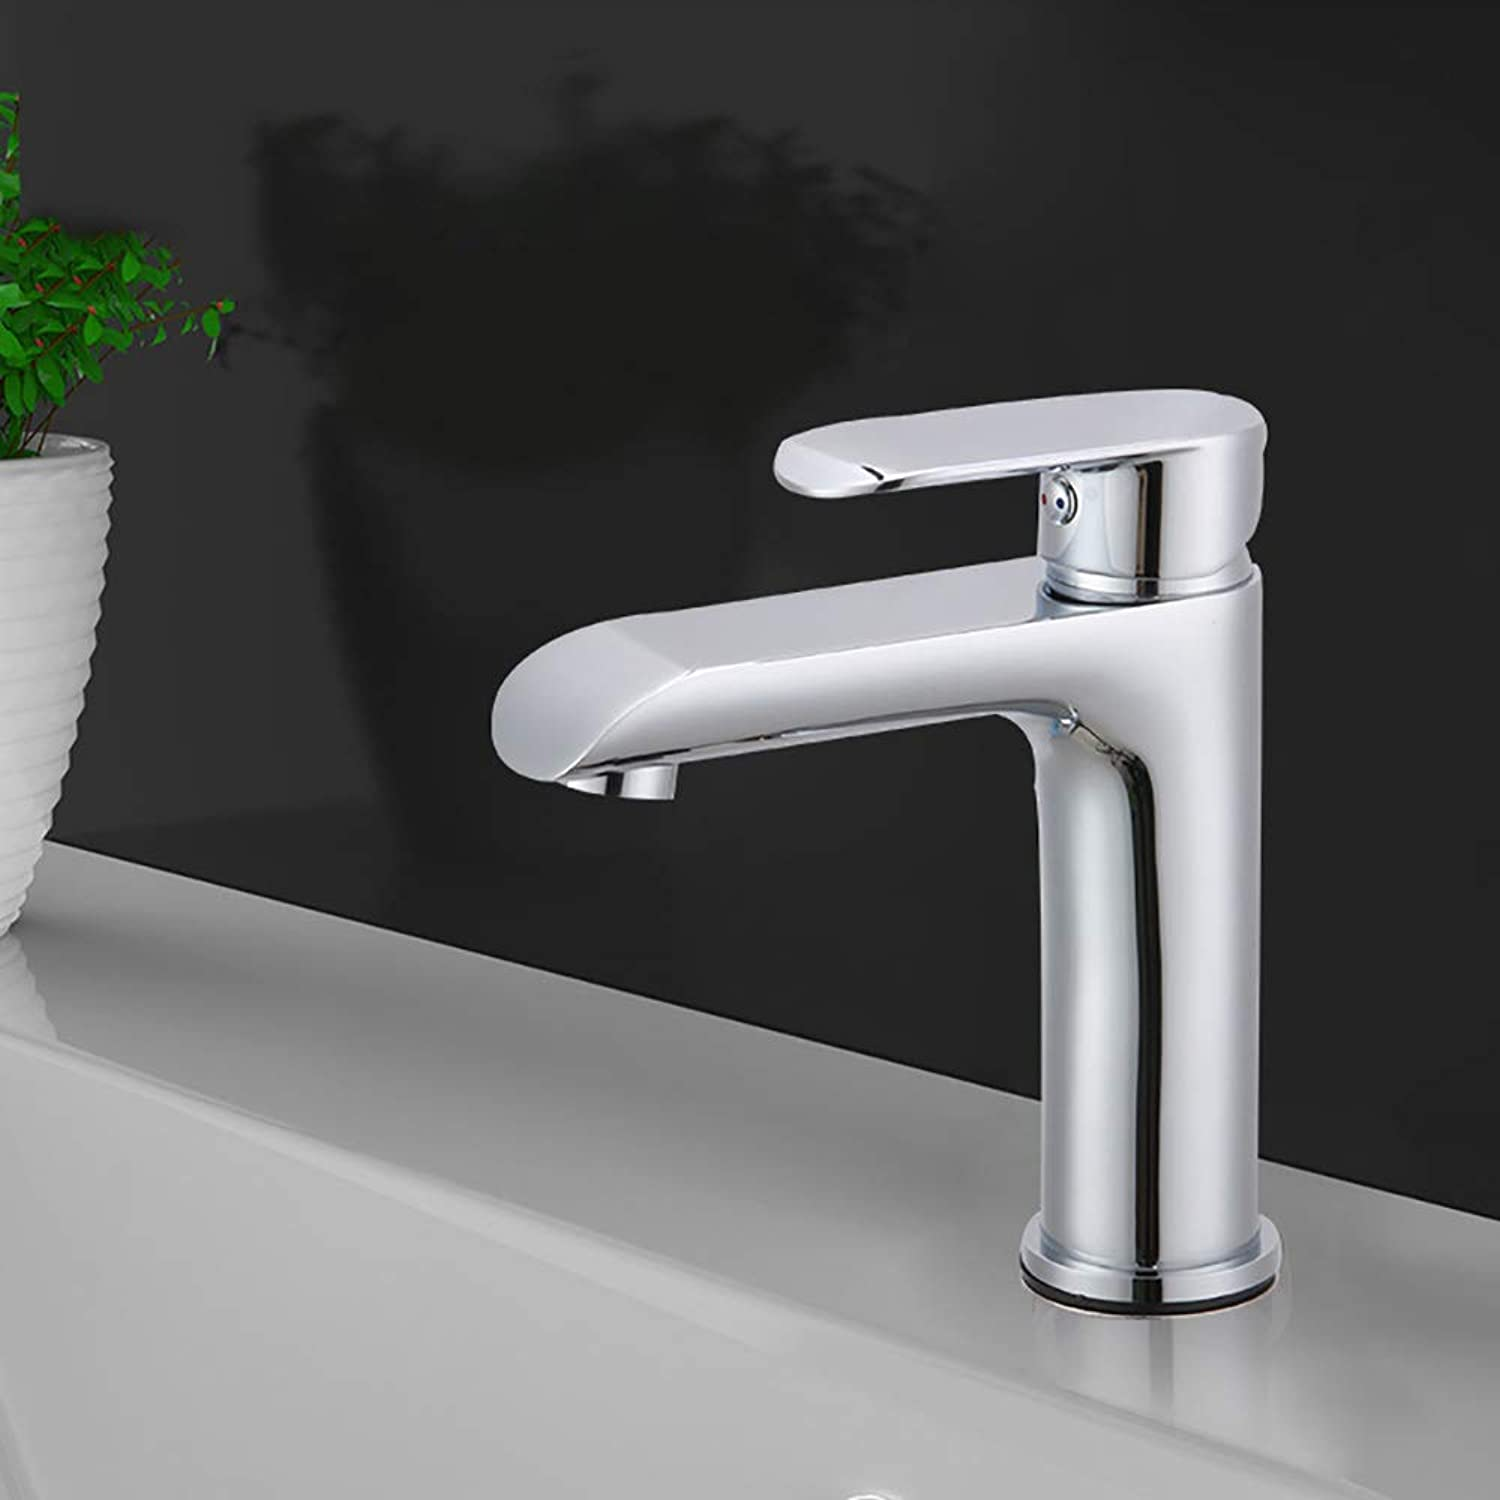 HUIJIN1 Single-Handle Bathroom Sink Faucet,Modern Waterfall Chrome Brass Hot And Cold Water Hose Deck Mount Widespread Bathroom Bar Vanity Sink Faucet